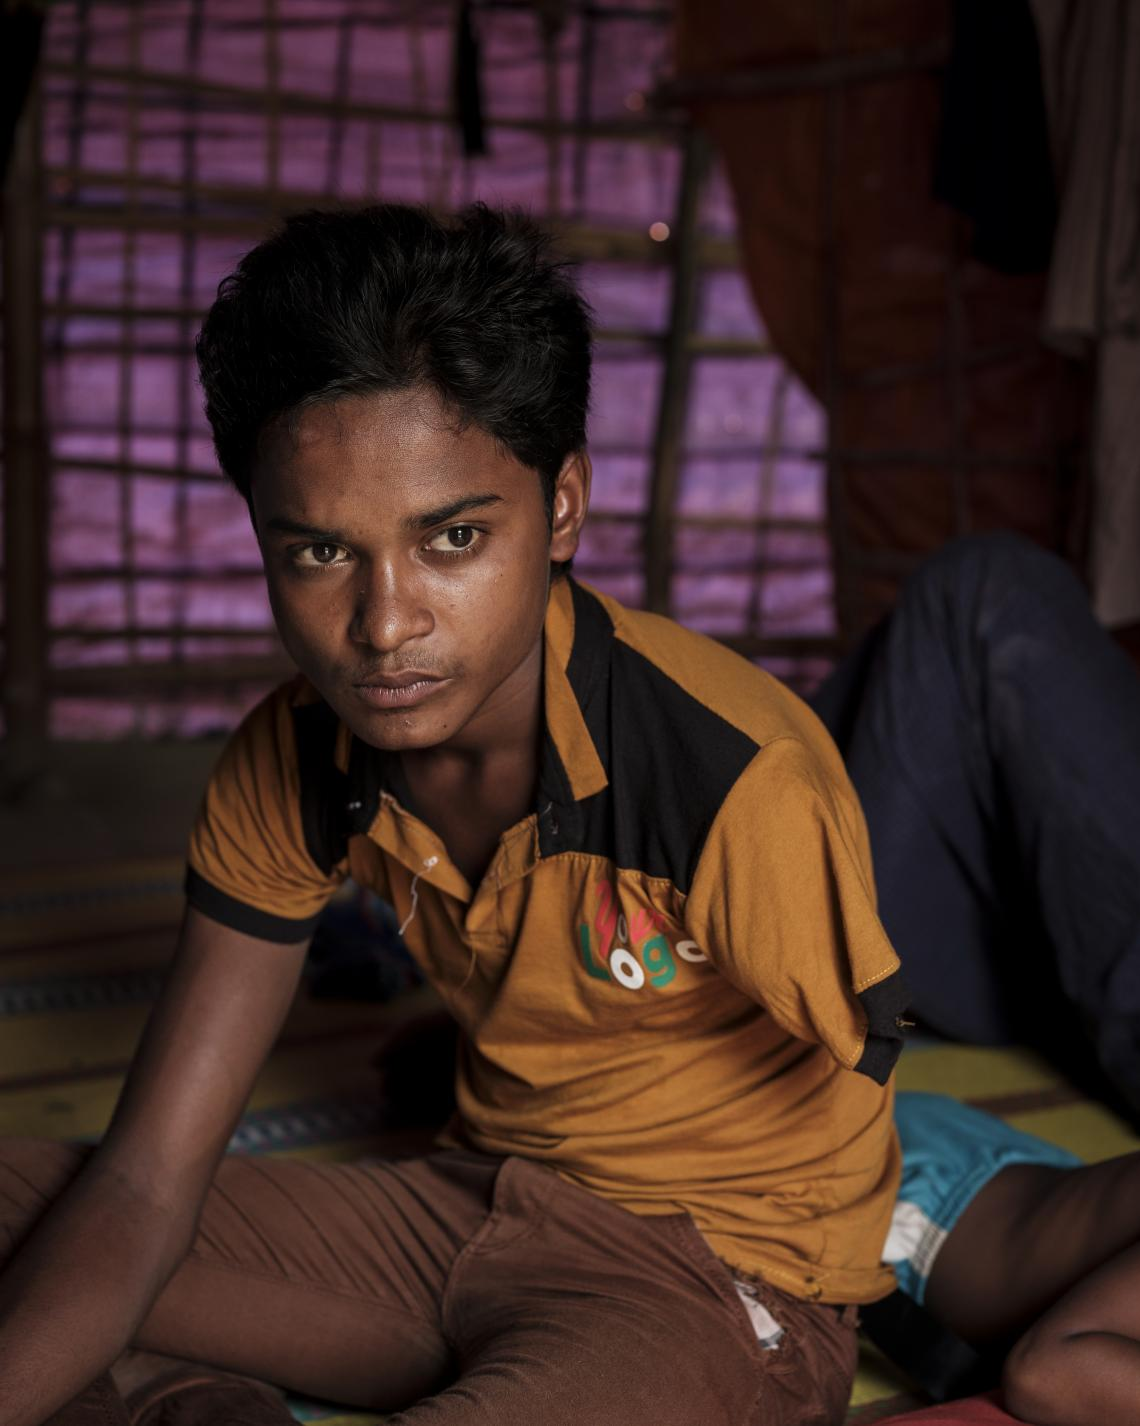 13 year-old Mohamed lost his arm during his flight from Myanmar last year